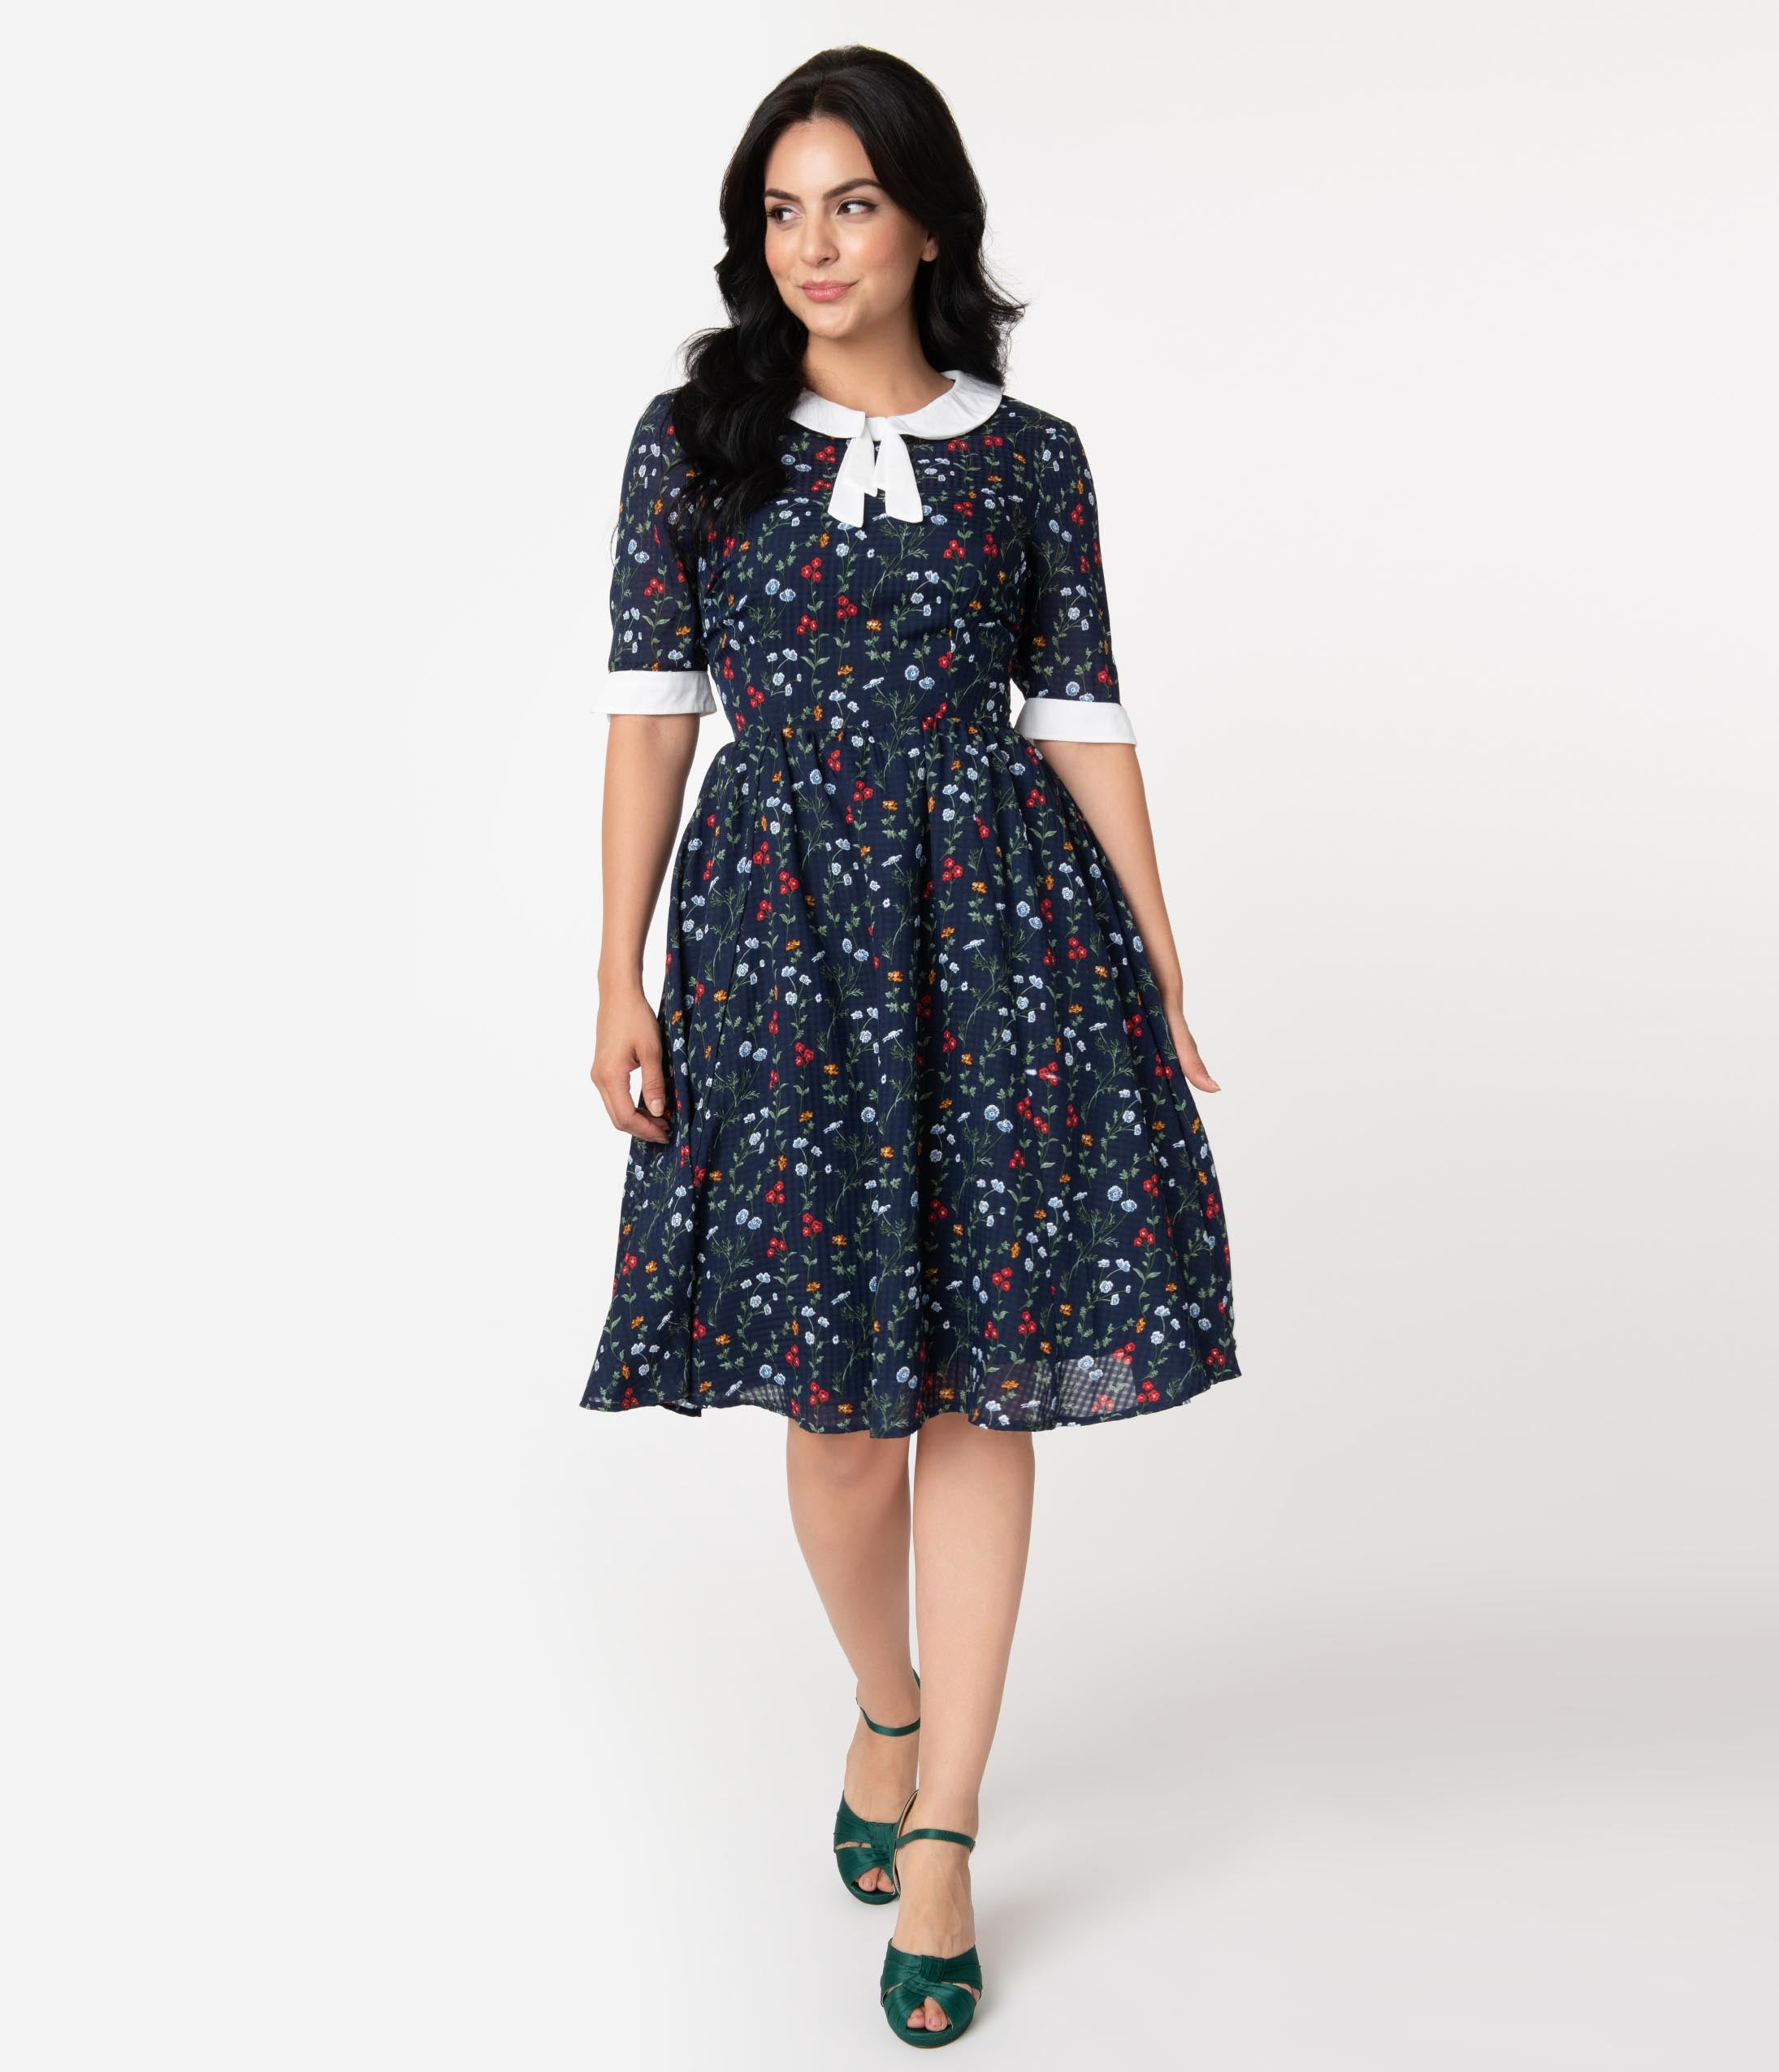 1950s Plus Size Dresses, Swing Dresses Unique Vintage 1950S Style Navy Floral Francine Swing Dress $78.00 AT vintagedancer.com